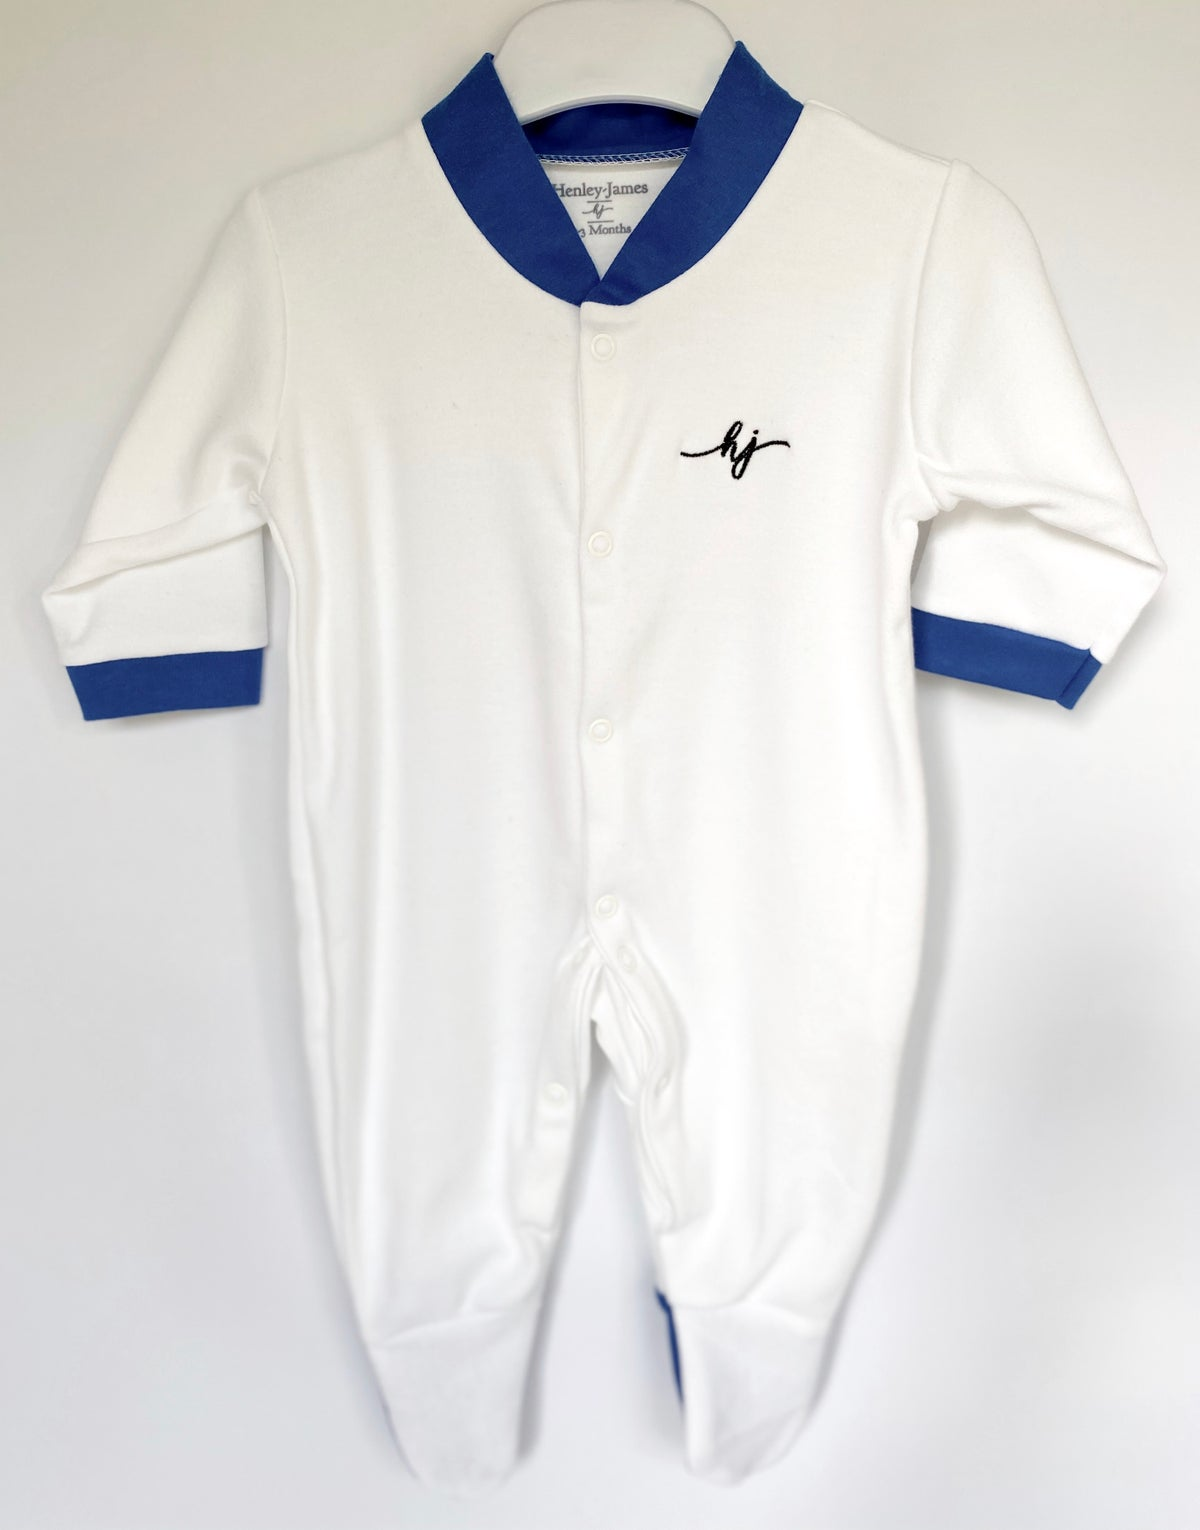 Trimmed Sleepsuits